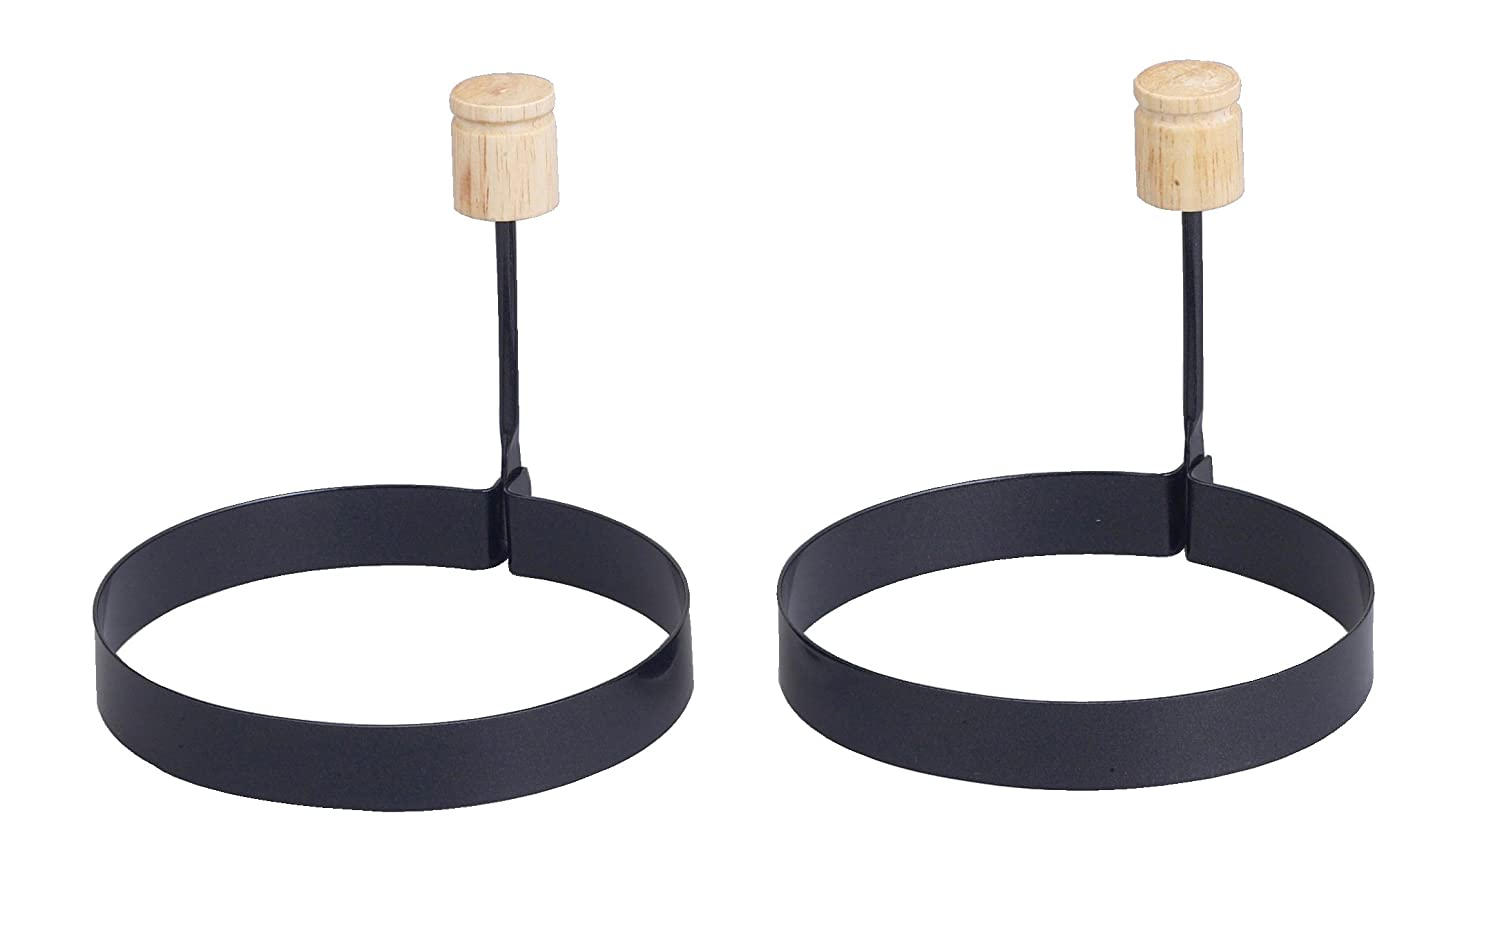 PFOA and BPA Free 43114//2 Round Shaped Nonstick HIC Non-Stick Fried and Poached Egg and Pancake Cooking Rings 3.75-Inches Diameter Set of 4 HIC Harold Import Co